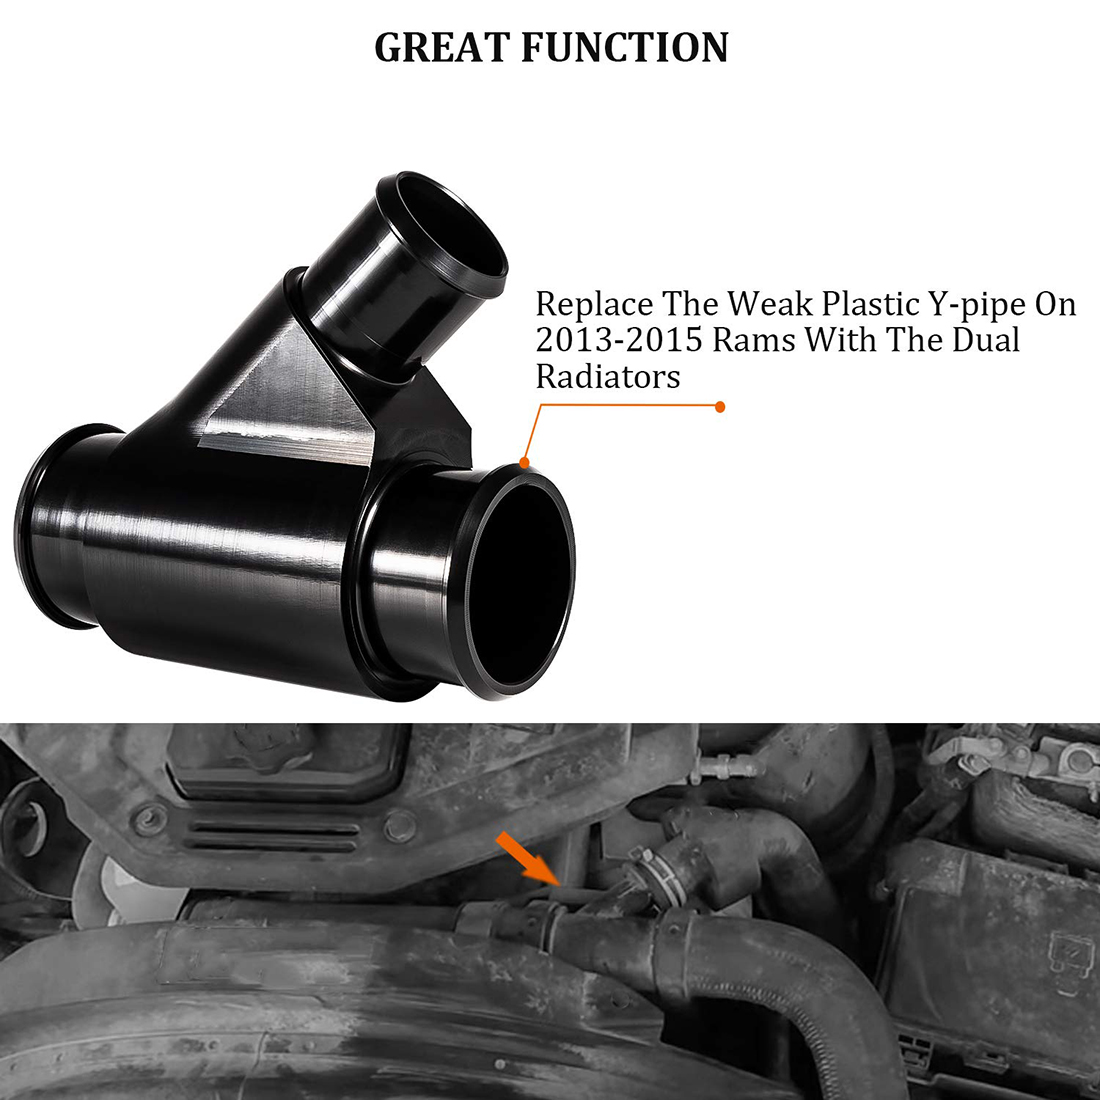 Billet Aluminum Weldless Dual Radiator Coolant Y-Pipe for 2013-2020 Dodge Ram 6.7L Cummins Diesel